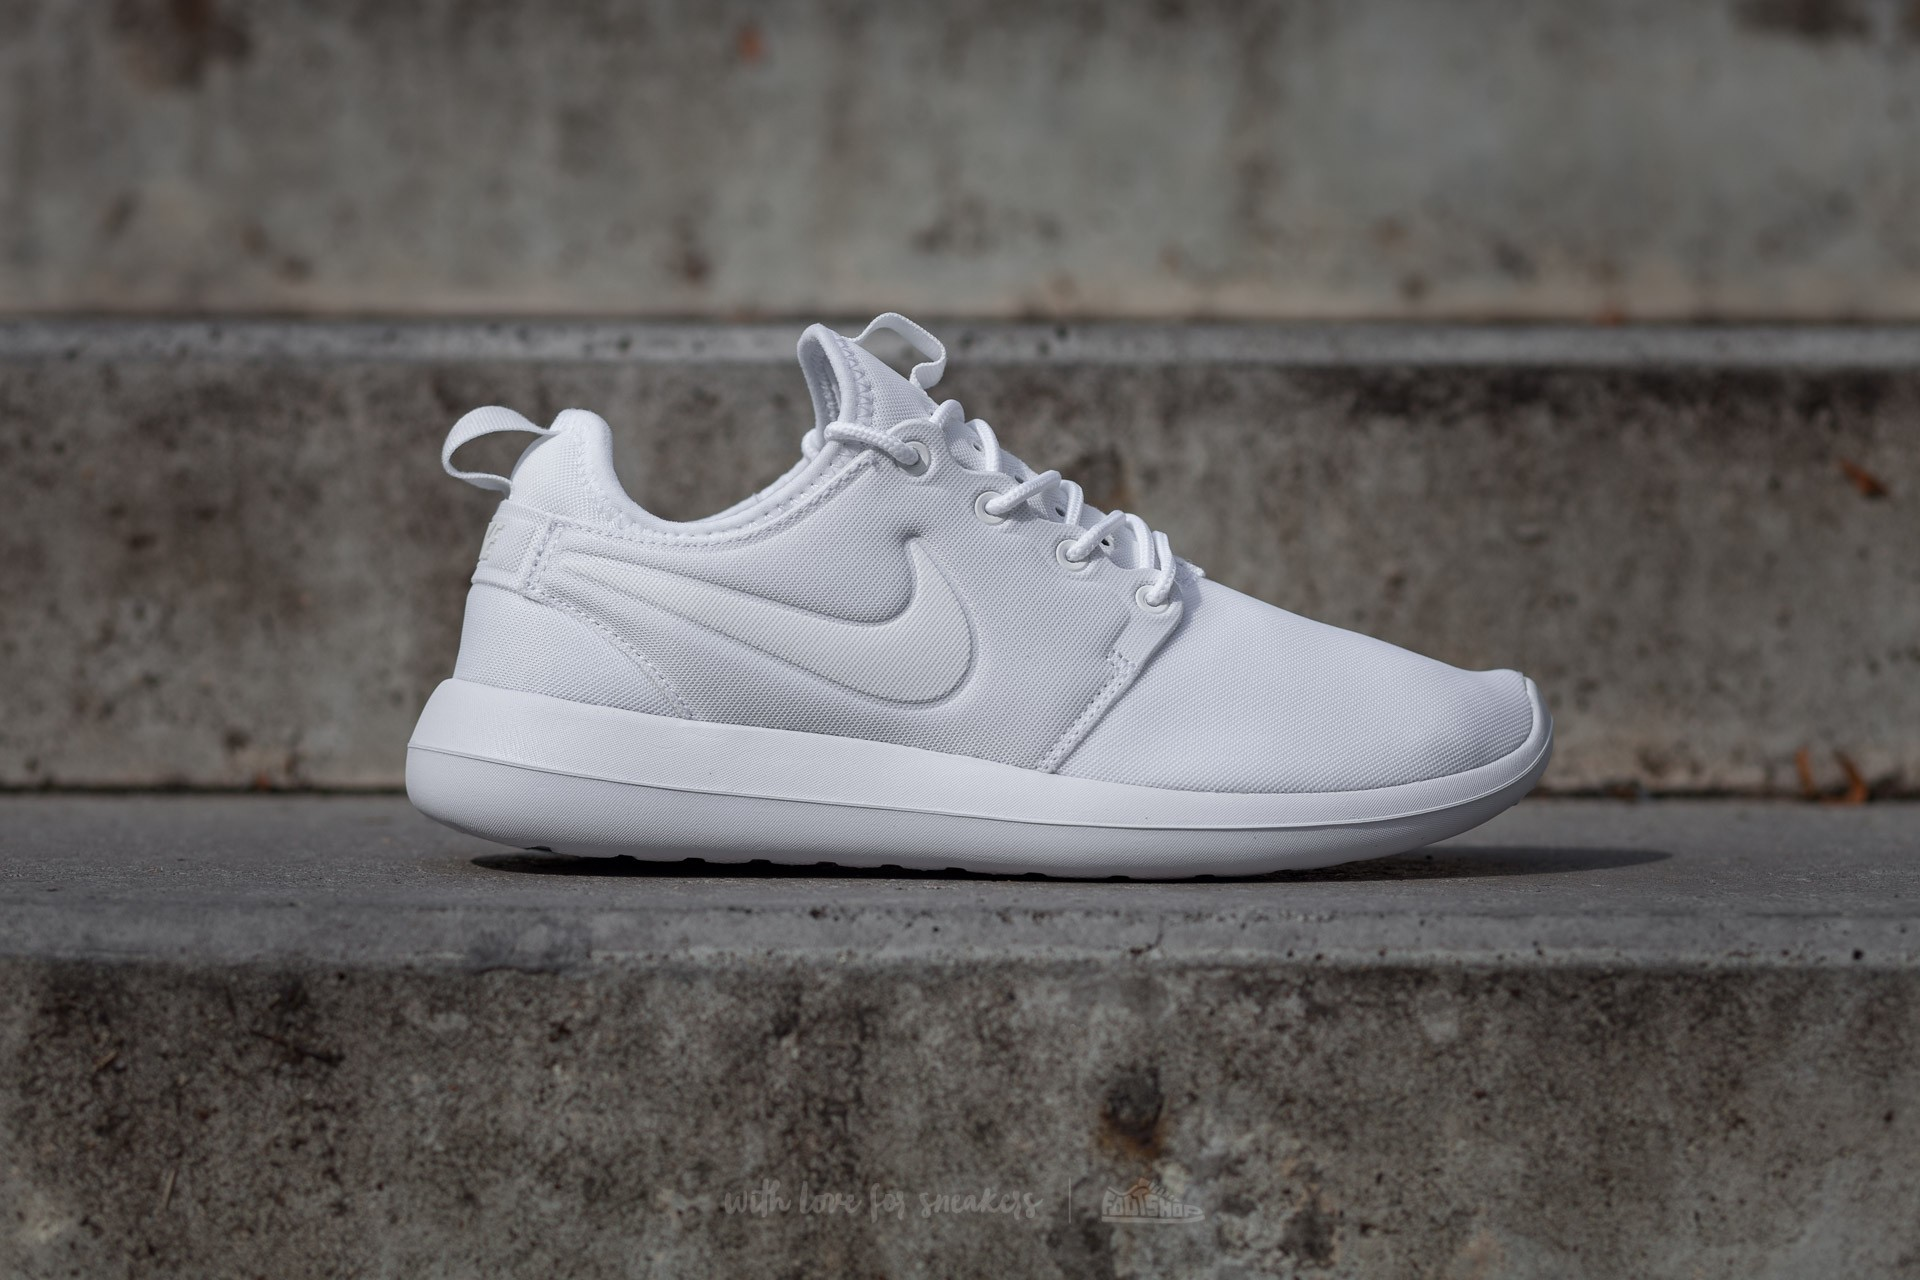 carbón complicaciones Roble  Women's shoes Nike W Roshe Two White/ White-Pure Platinum | Footshop